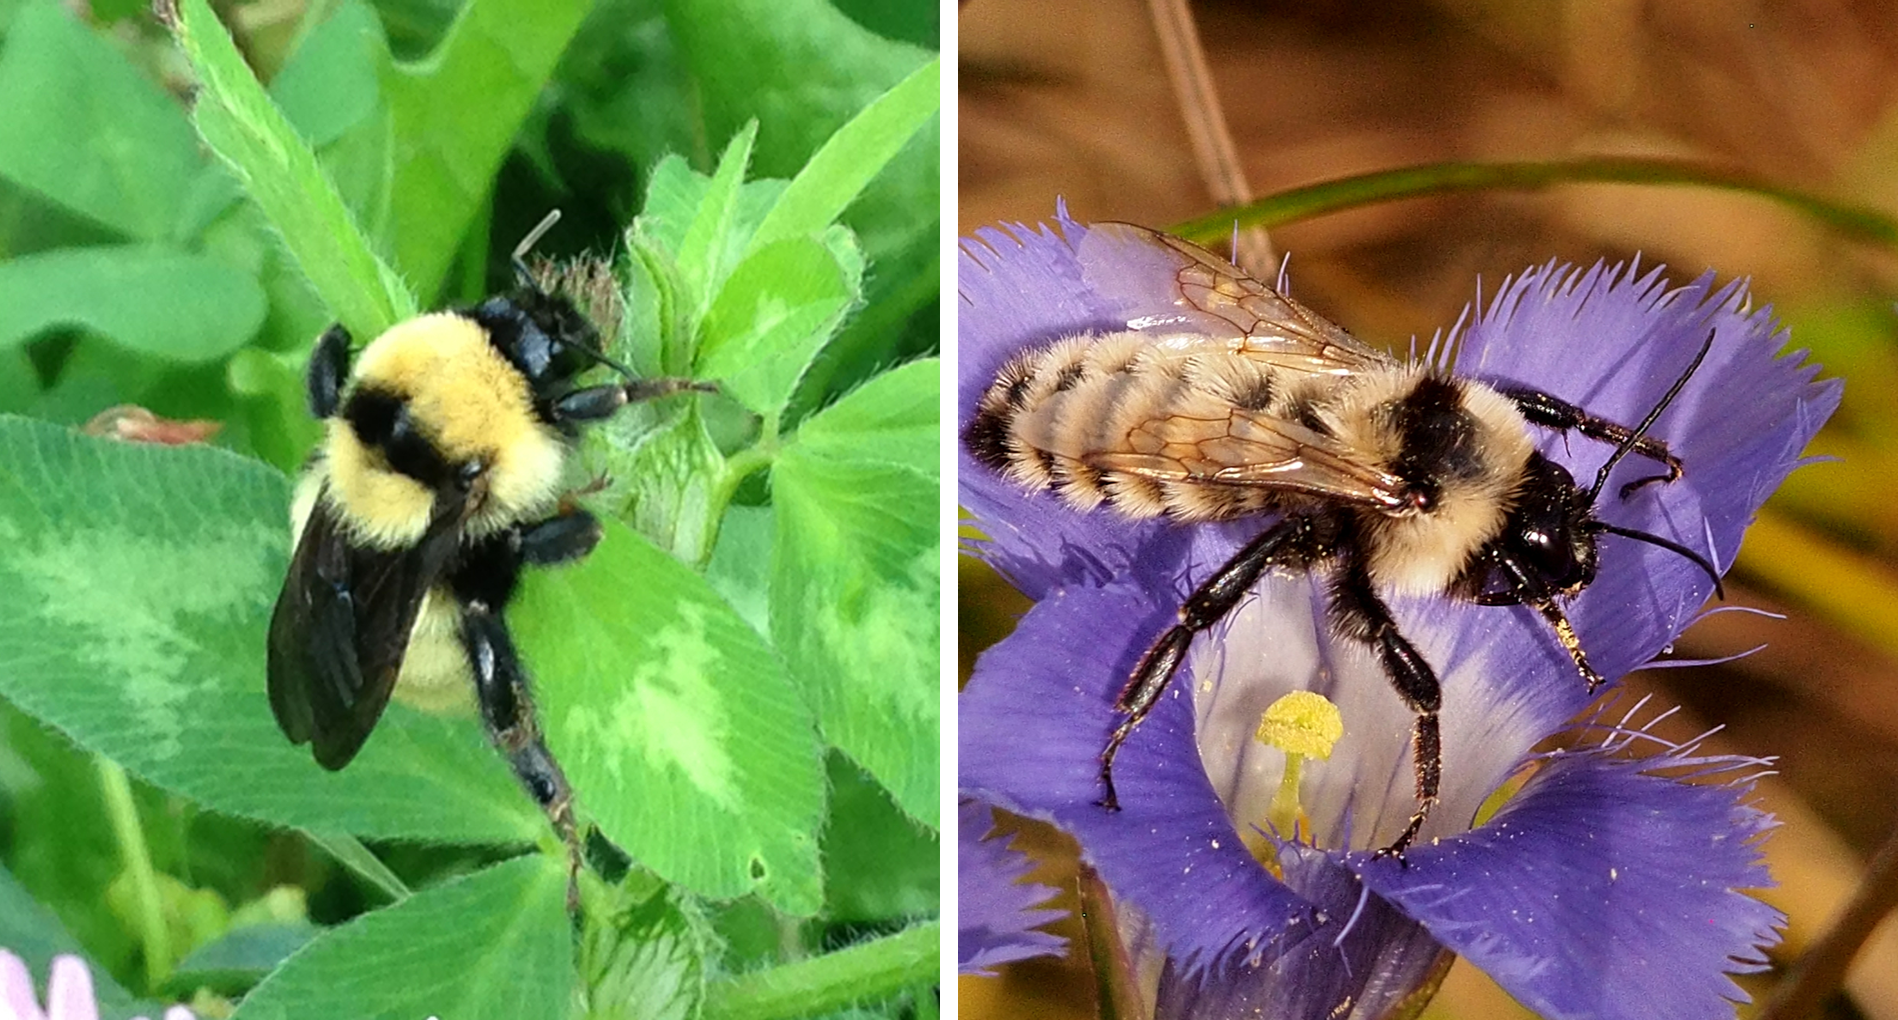 Golden Northern Bumble Bee Png - Field Guide to the Bumble Bees of VT | Vermont Atlas of Life